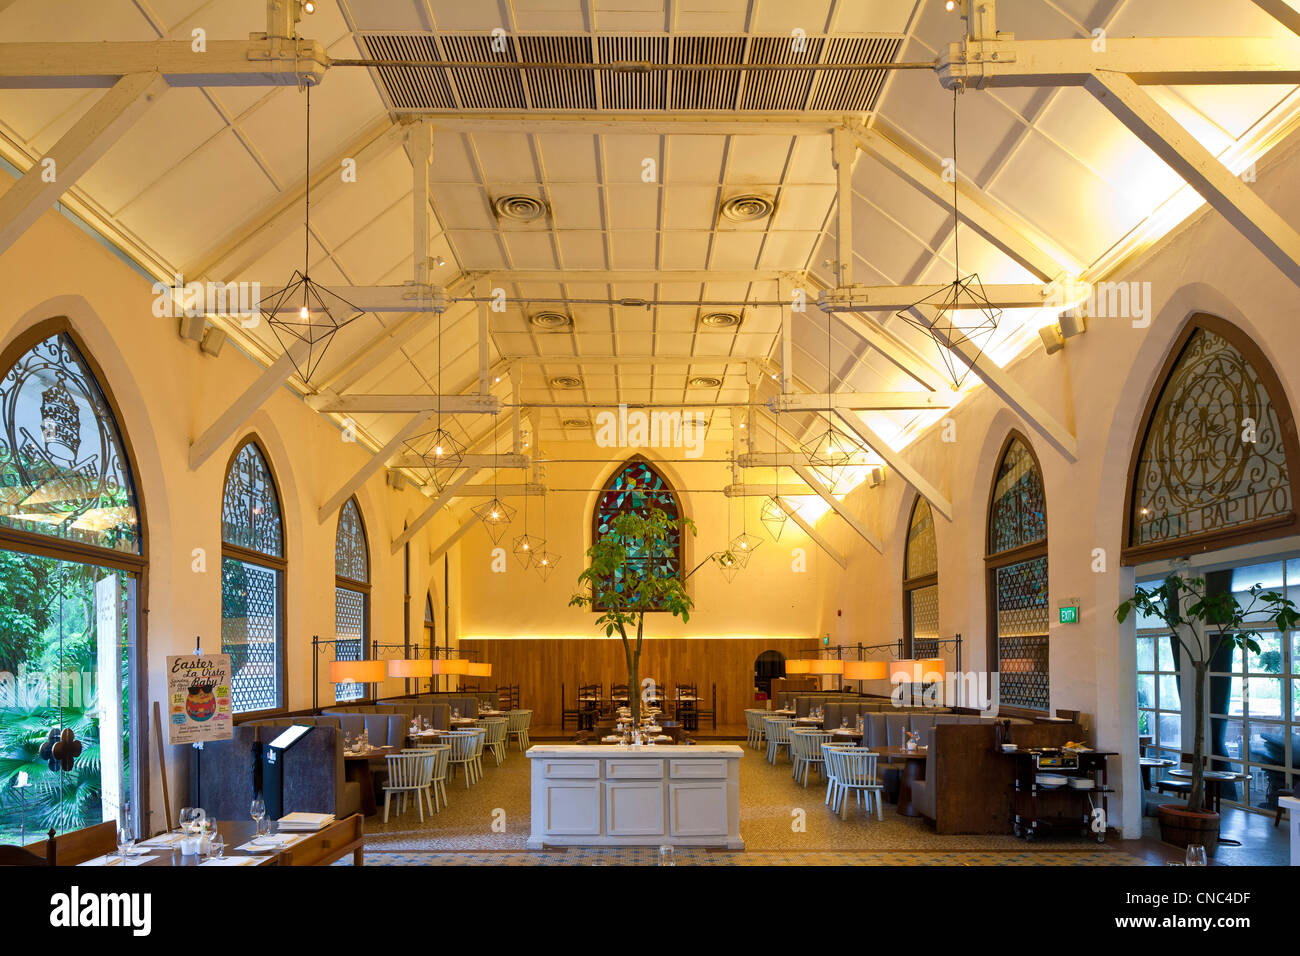 Singapore, Dempsey Hill, restaurant The White Rabbit, opened in 2008 in a former chapel, property of an English - Stock Image